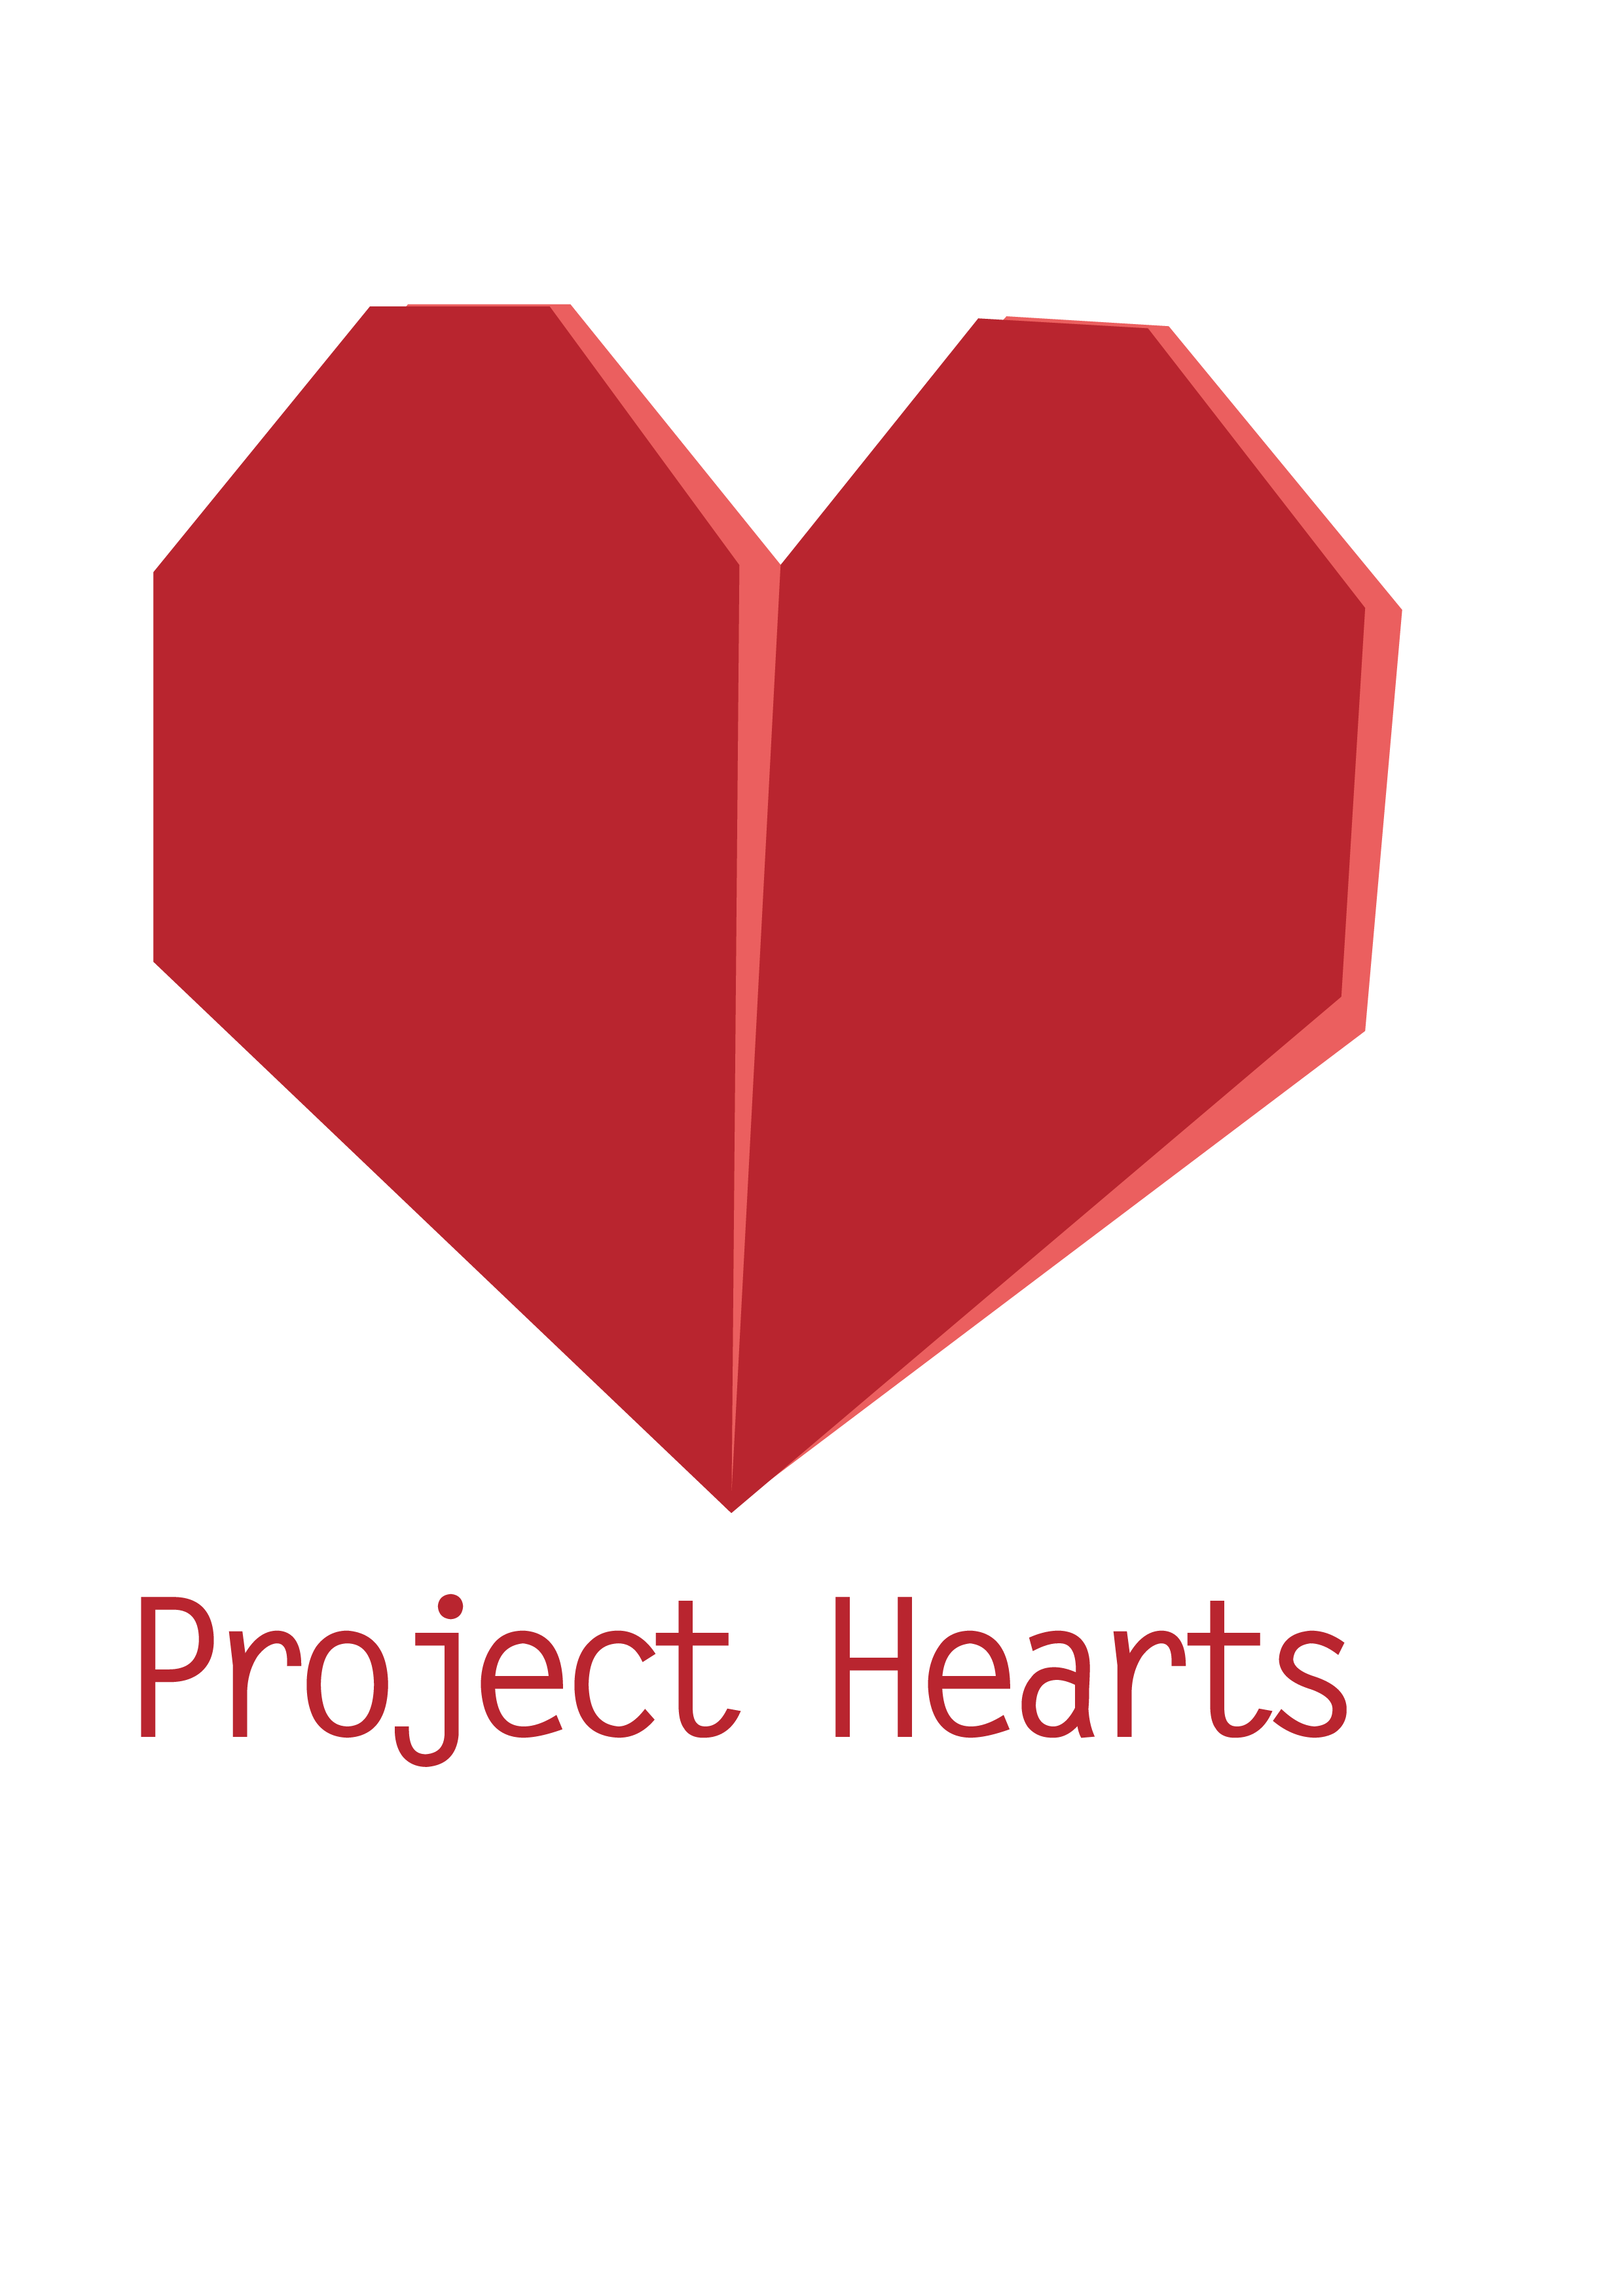 project heartbeat Get the latest project heartbeat coupons, promo codes and deals shopping at projectheartbeatcom with lowest price by entering discount.